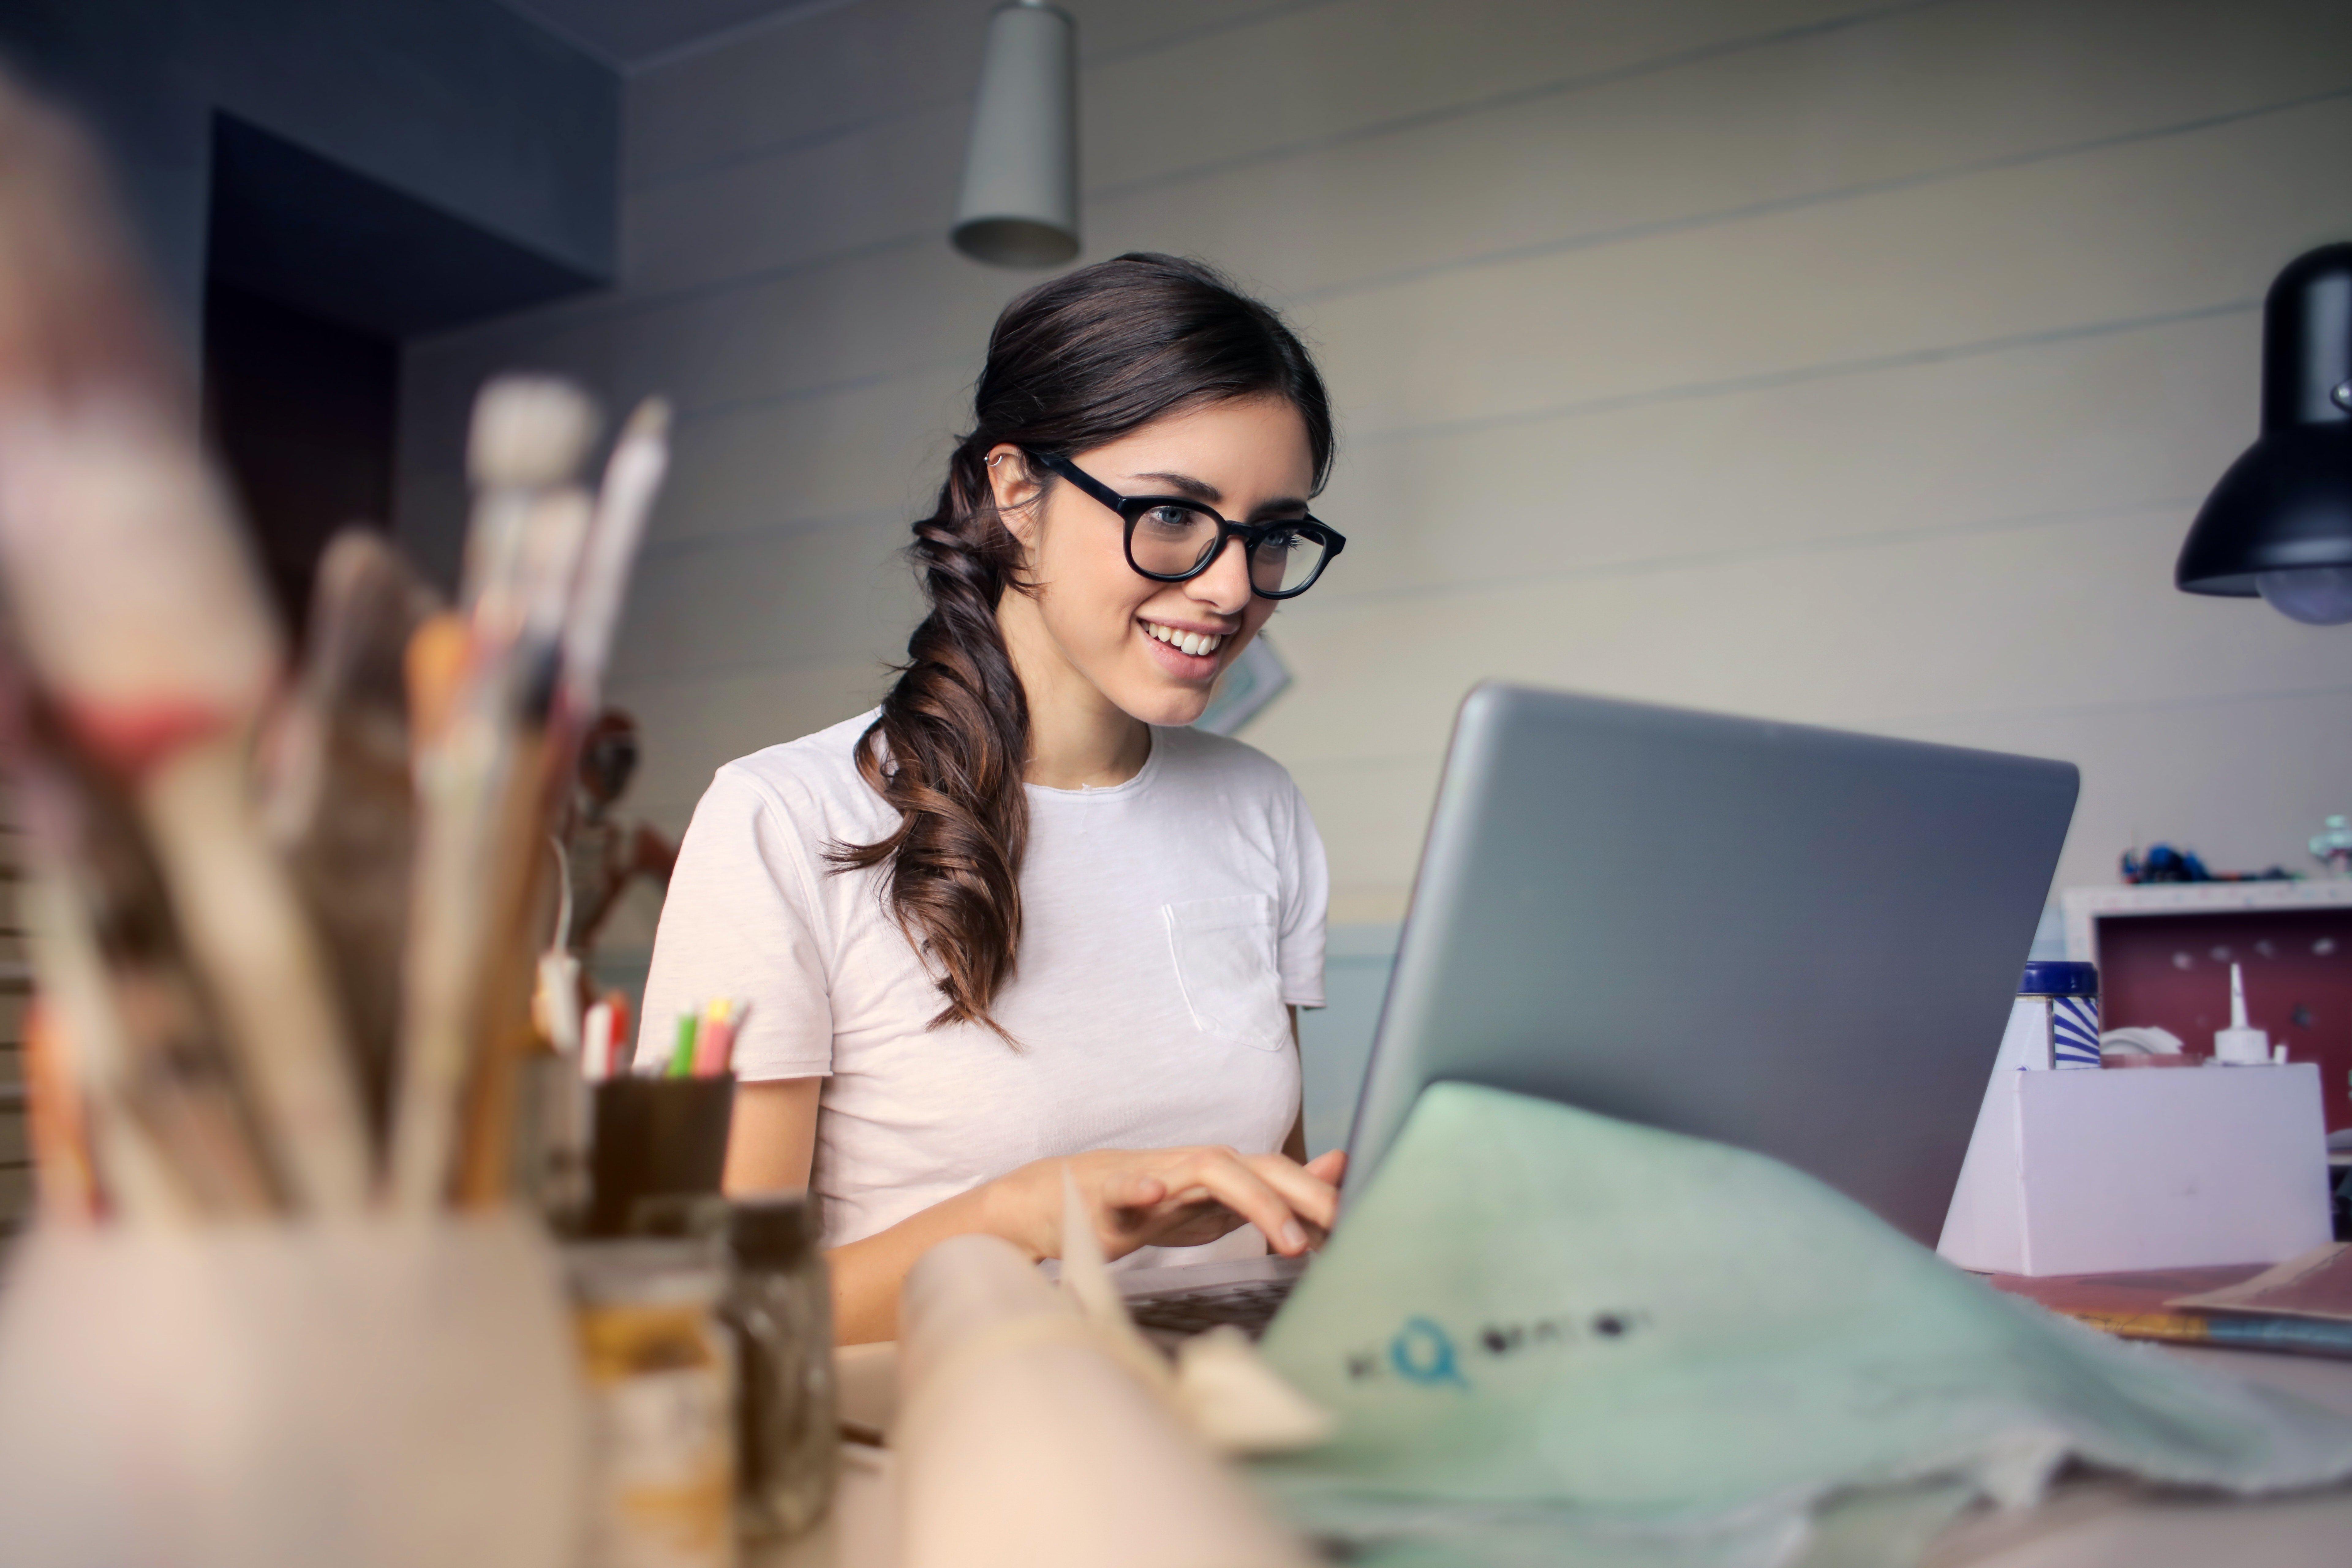 Woman working on computer